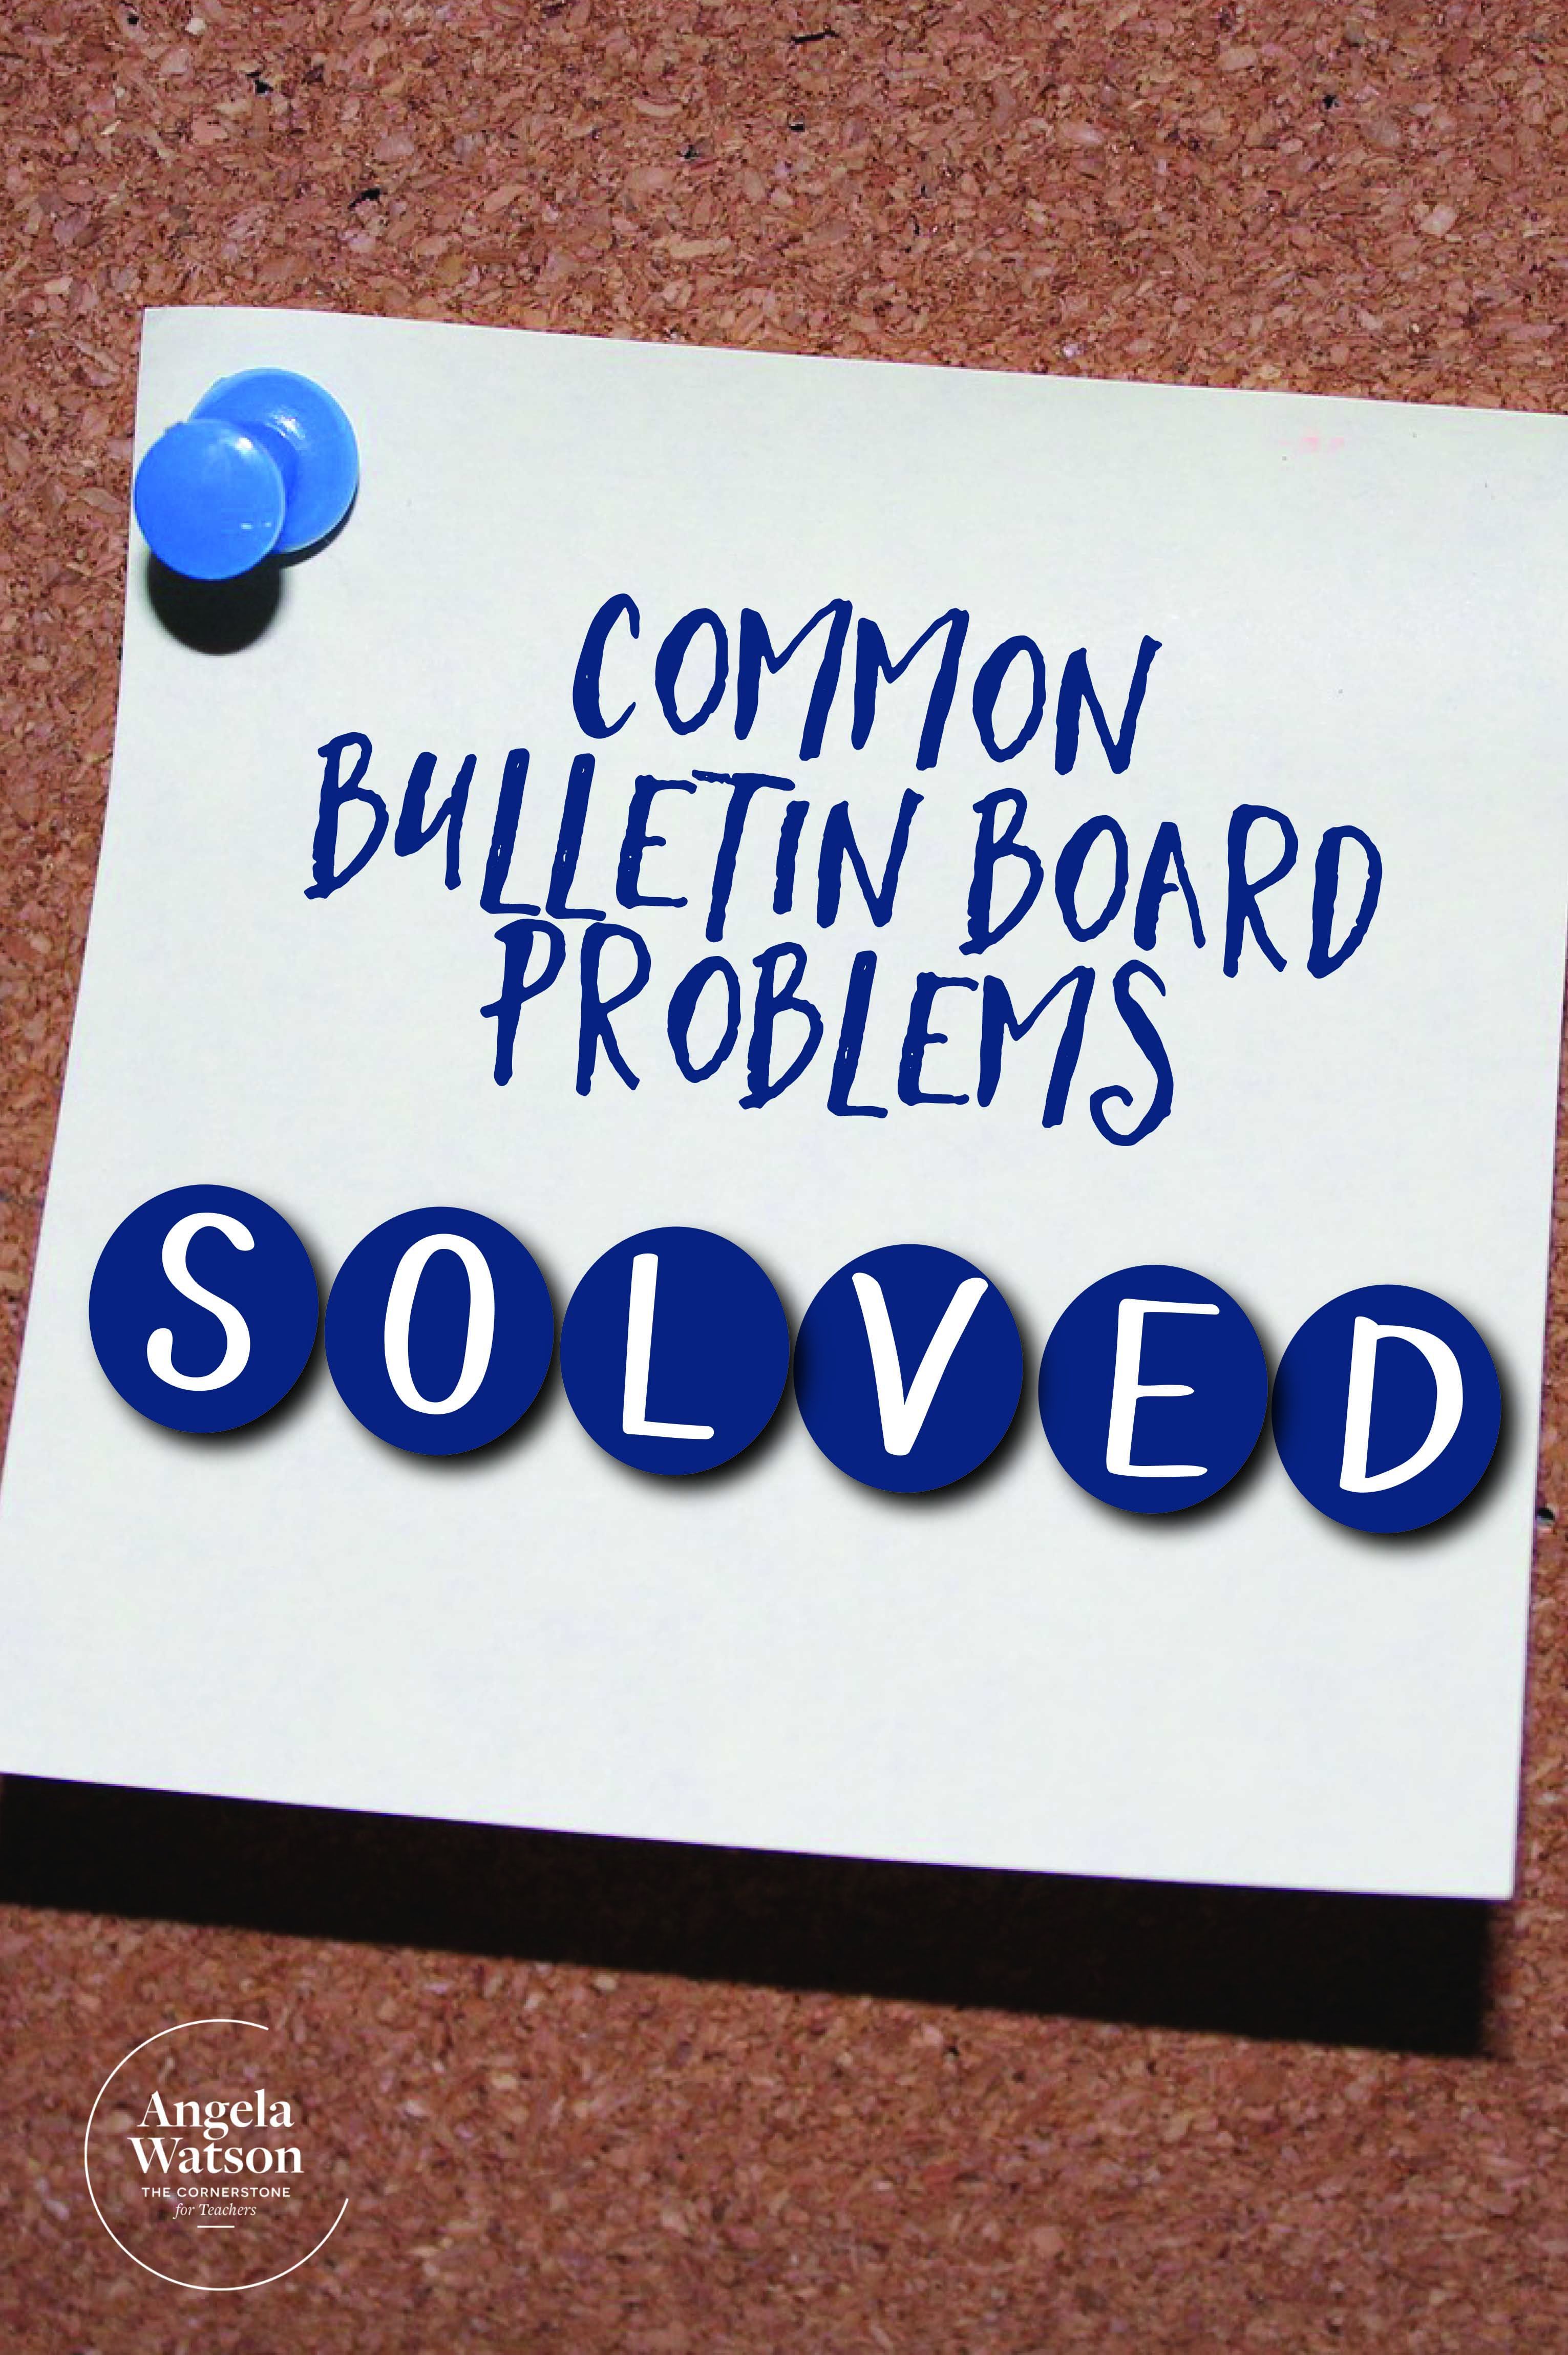 Common bulletin board problems solved.